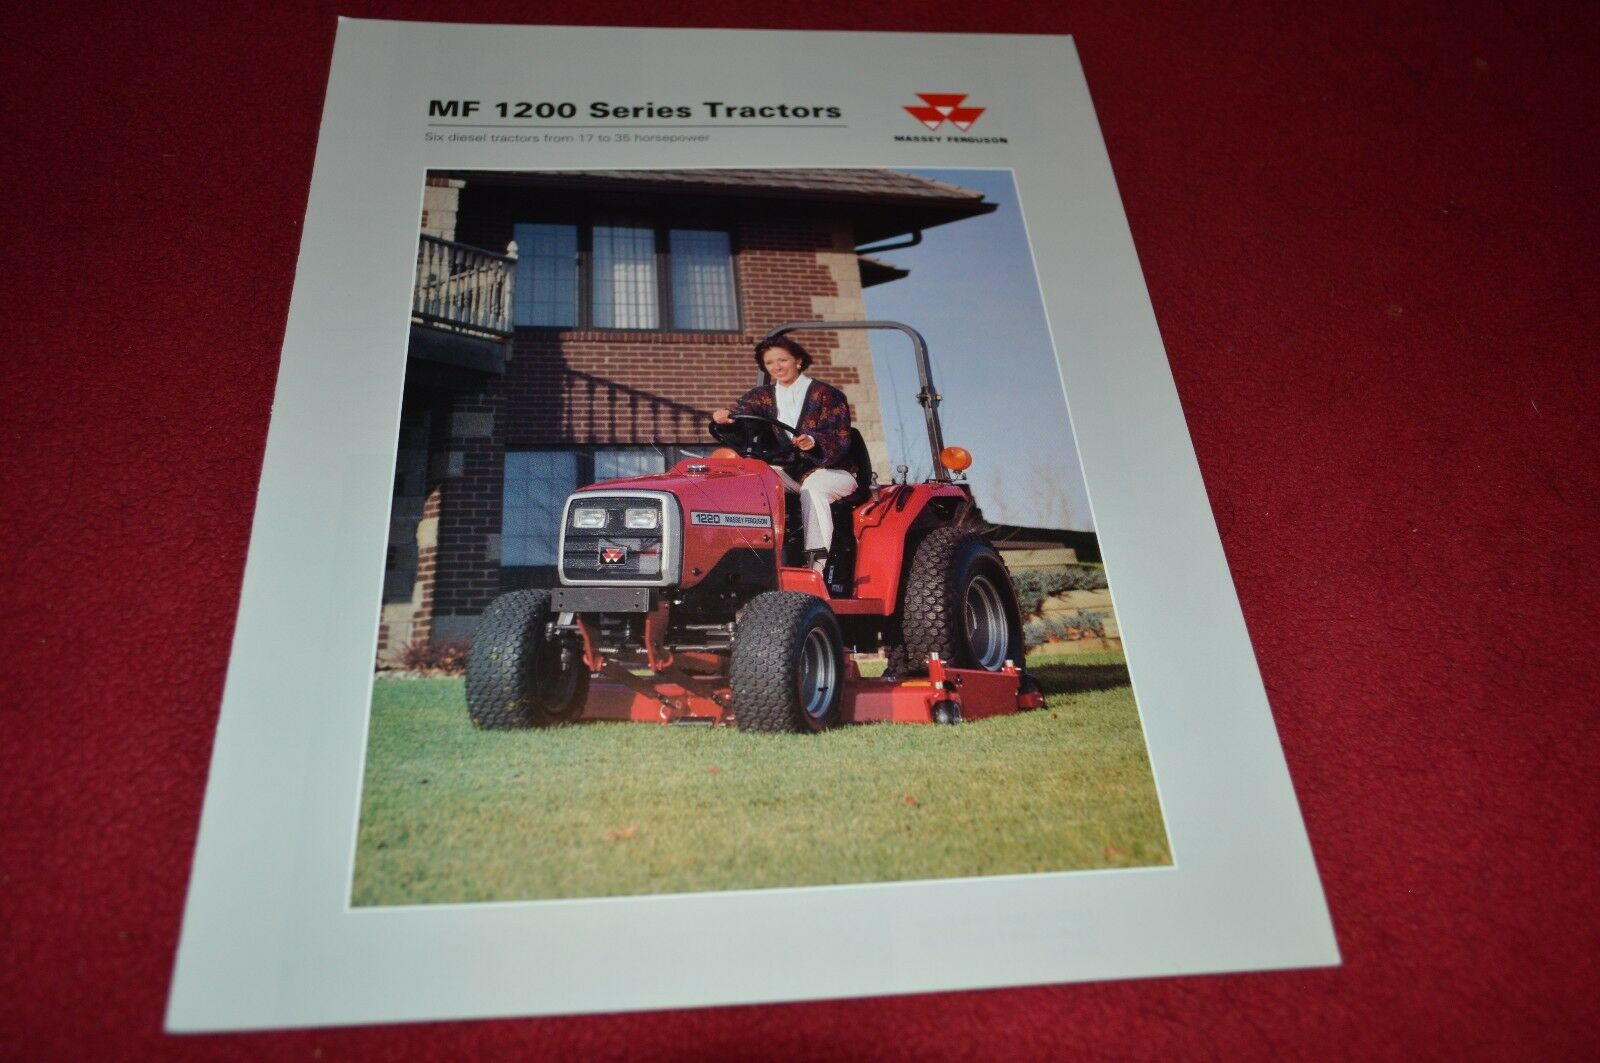 Massey Ferguson 1220 1230 1240 1250 1260 Tractor Dealer's Brochure YABE5 1  of 1Only 1 available ...